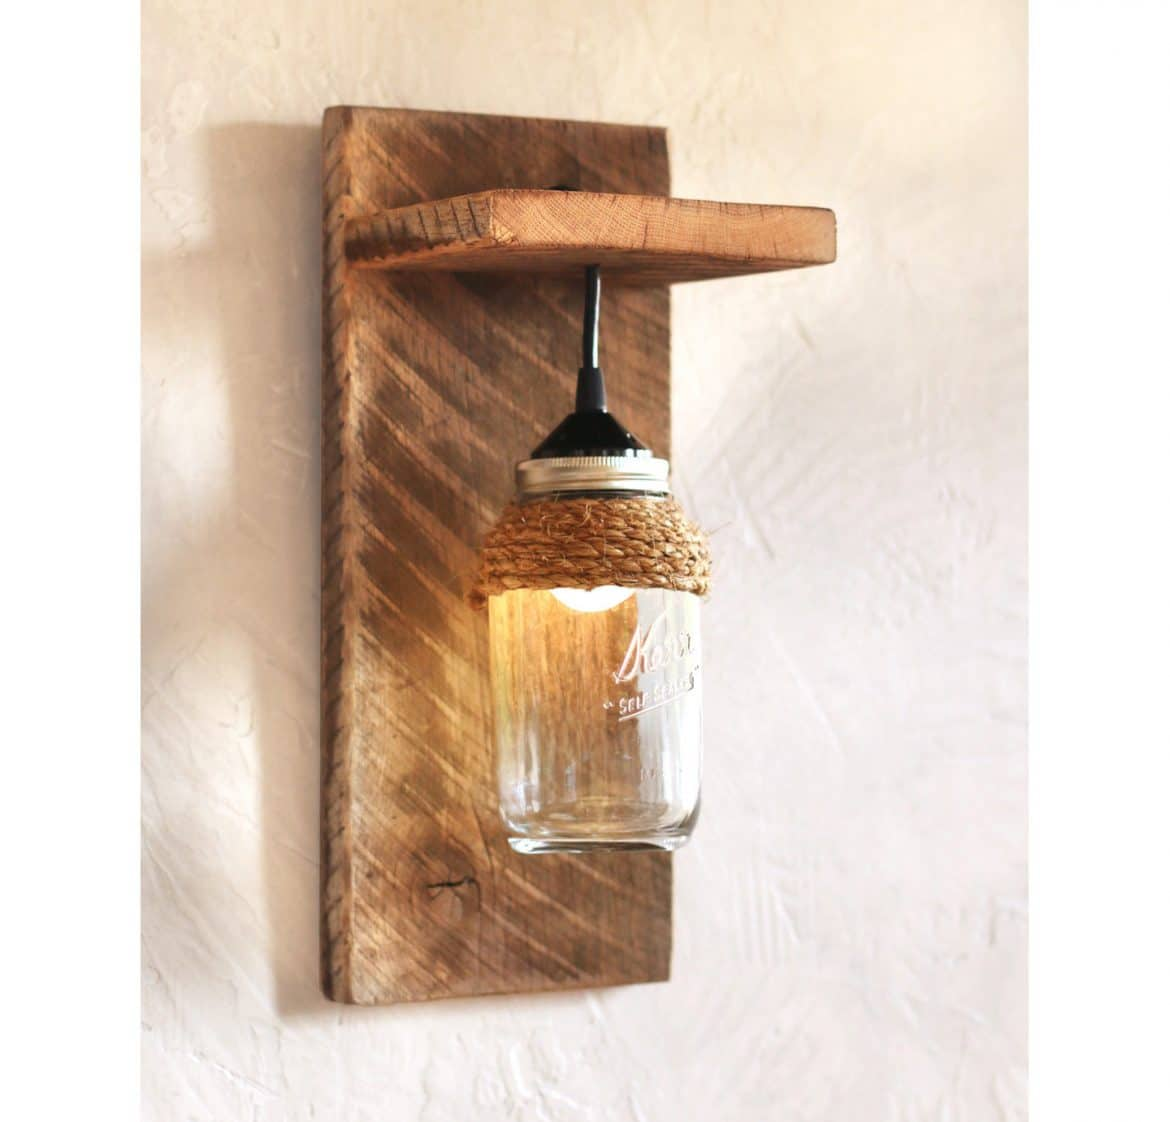 Diy Wooden Wall Lamps : Mason Jar Farmhouse Wall Sconce iD Lights